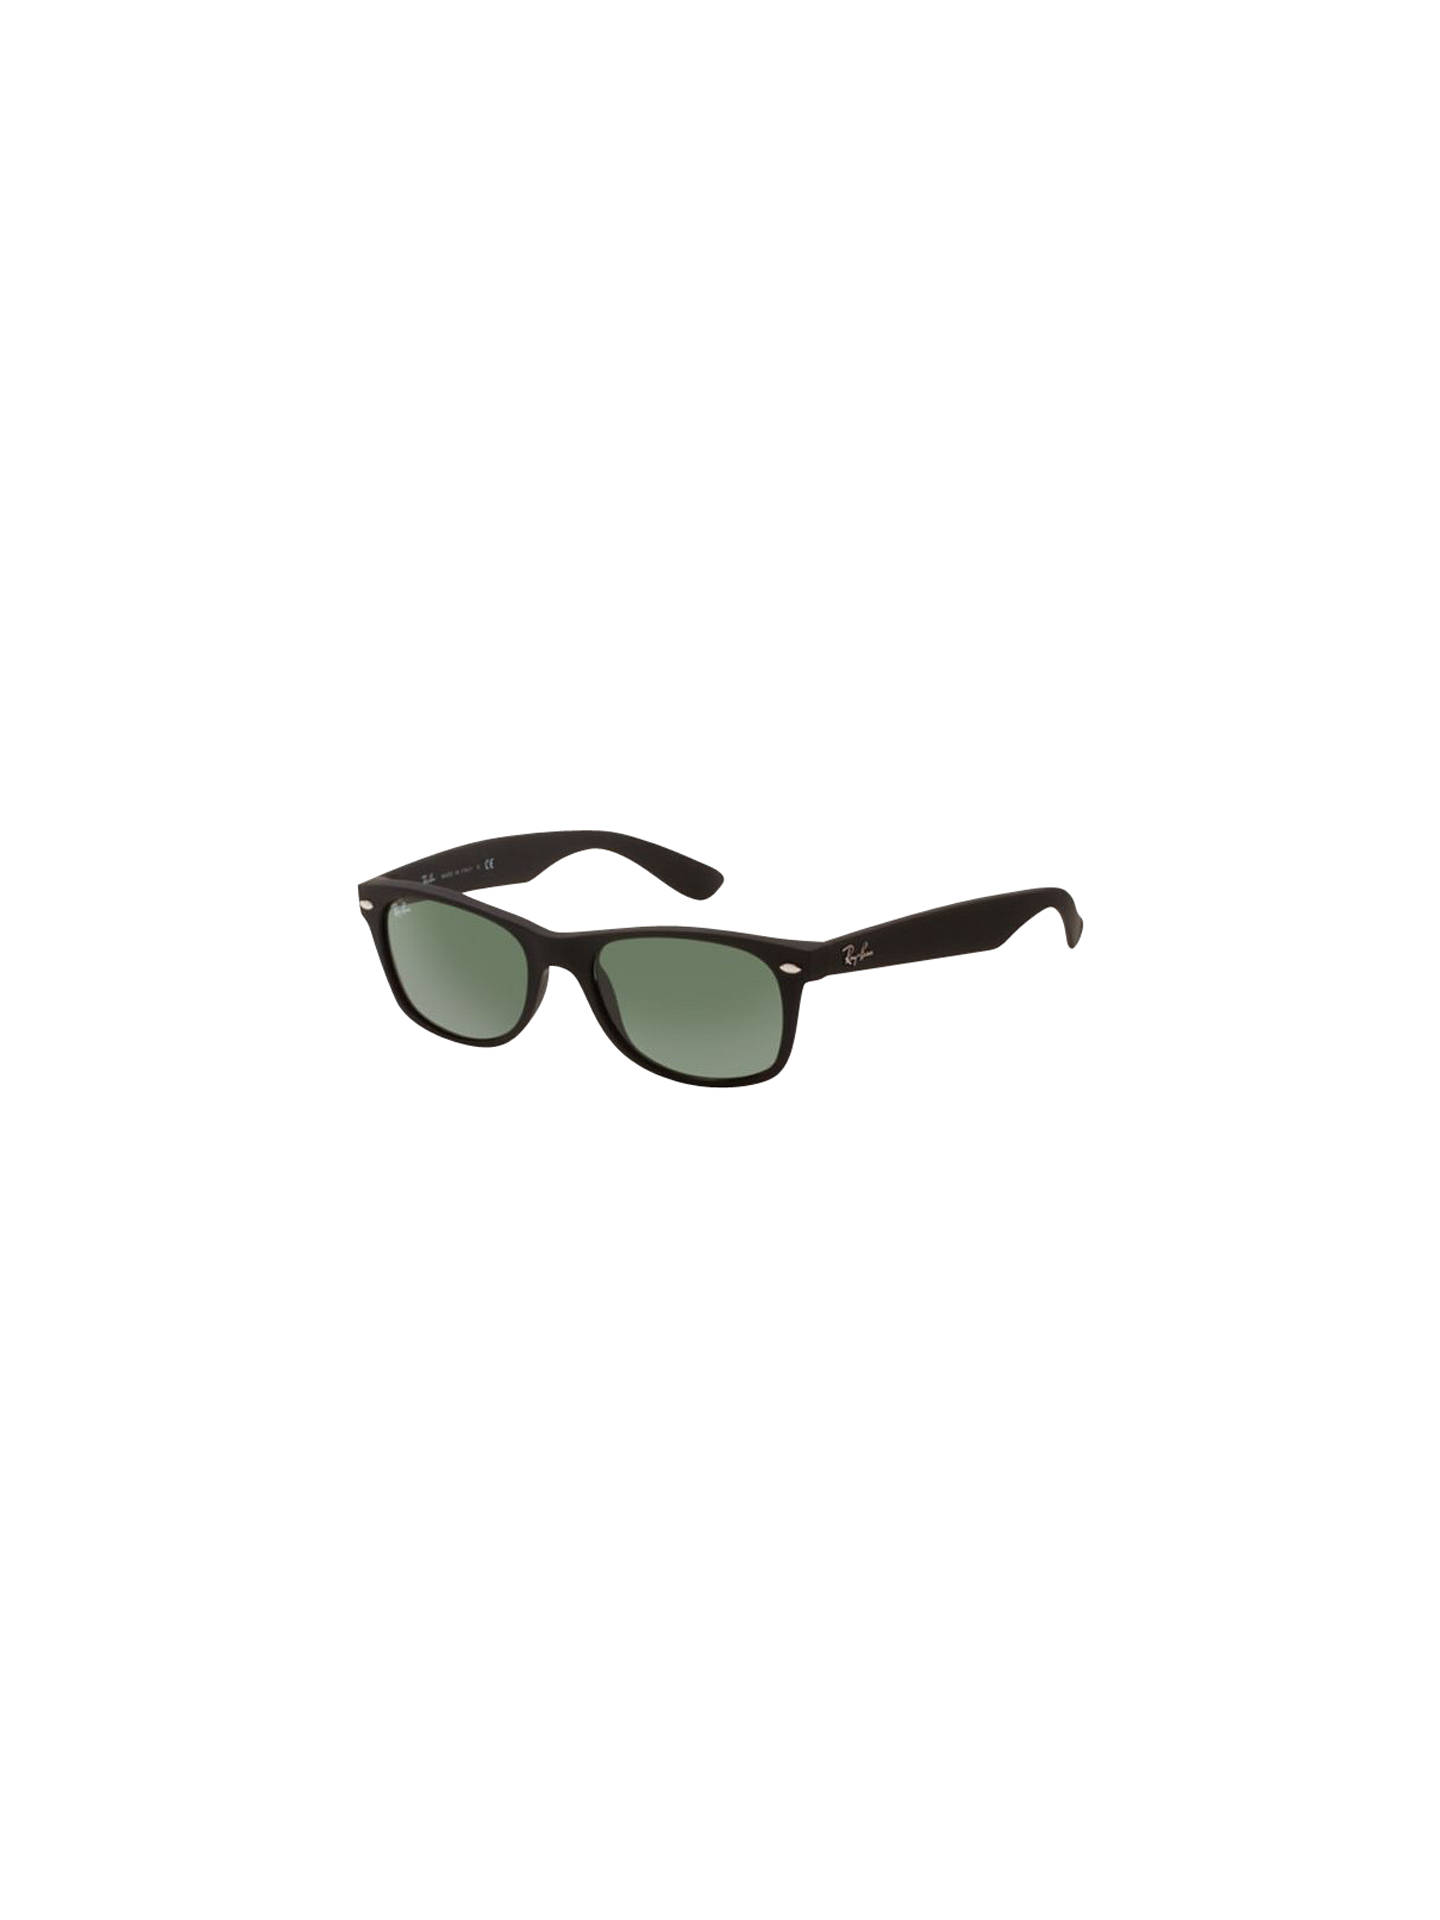 9d2c0a5279 BuyRay-Ban RB2132 New Wayfarer Sunglasses